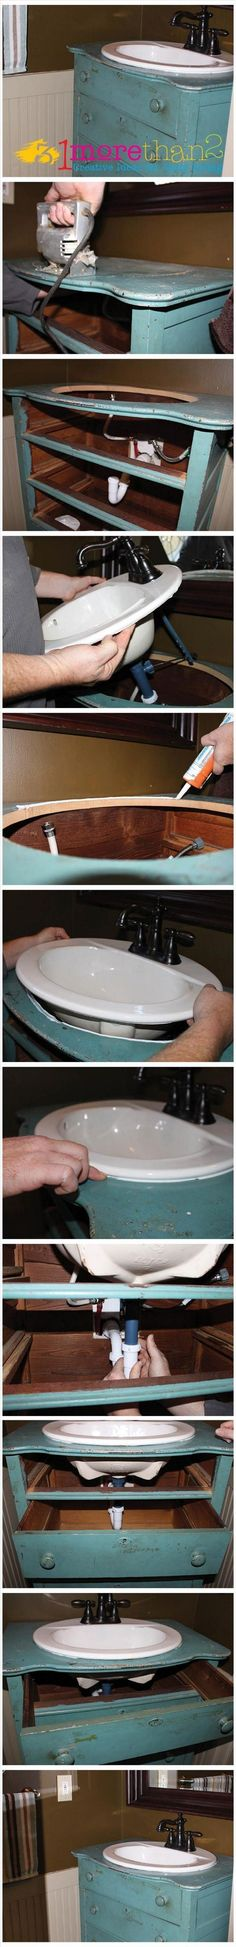 Some cool home improvement ideas (19)